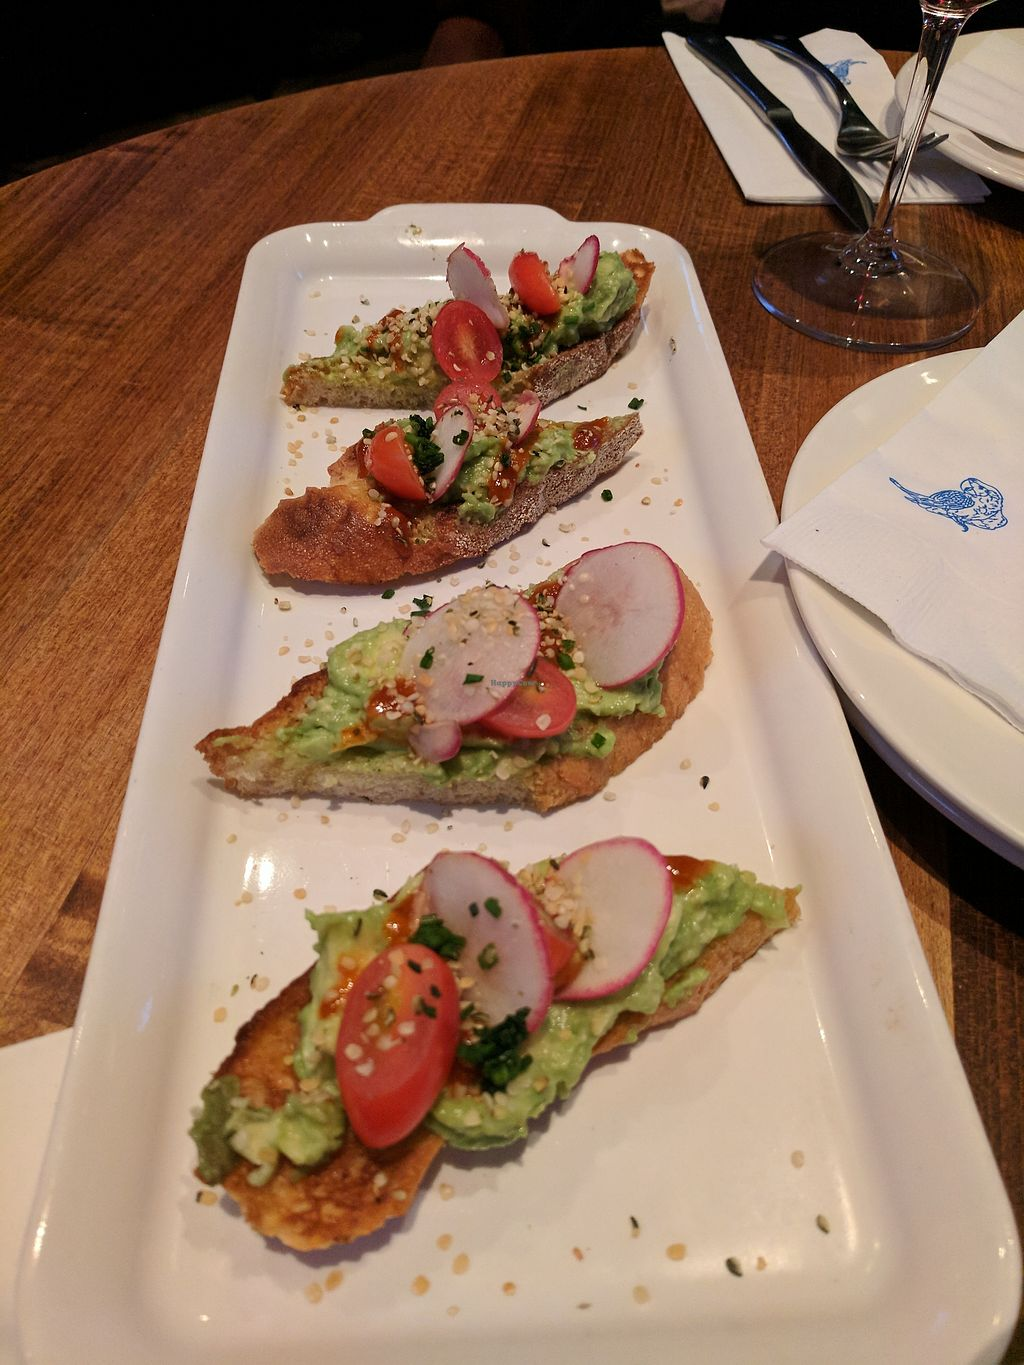 """Photo of Earl's Kitchen + Bar  by <a href=""""/members/profile/lmcc"""">lmcc</a> <br/>Avocado Toast <br/> December 15, 2017  - <a href='/contact/abuse/image/107266/335911'>Report</a>"""